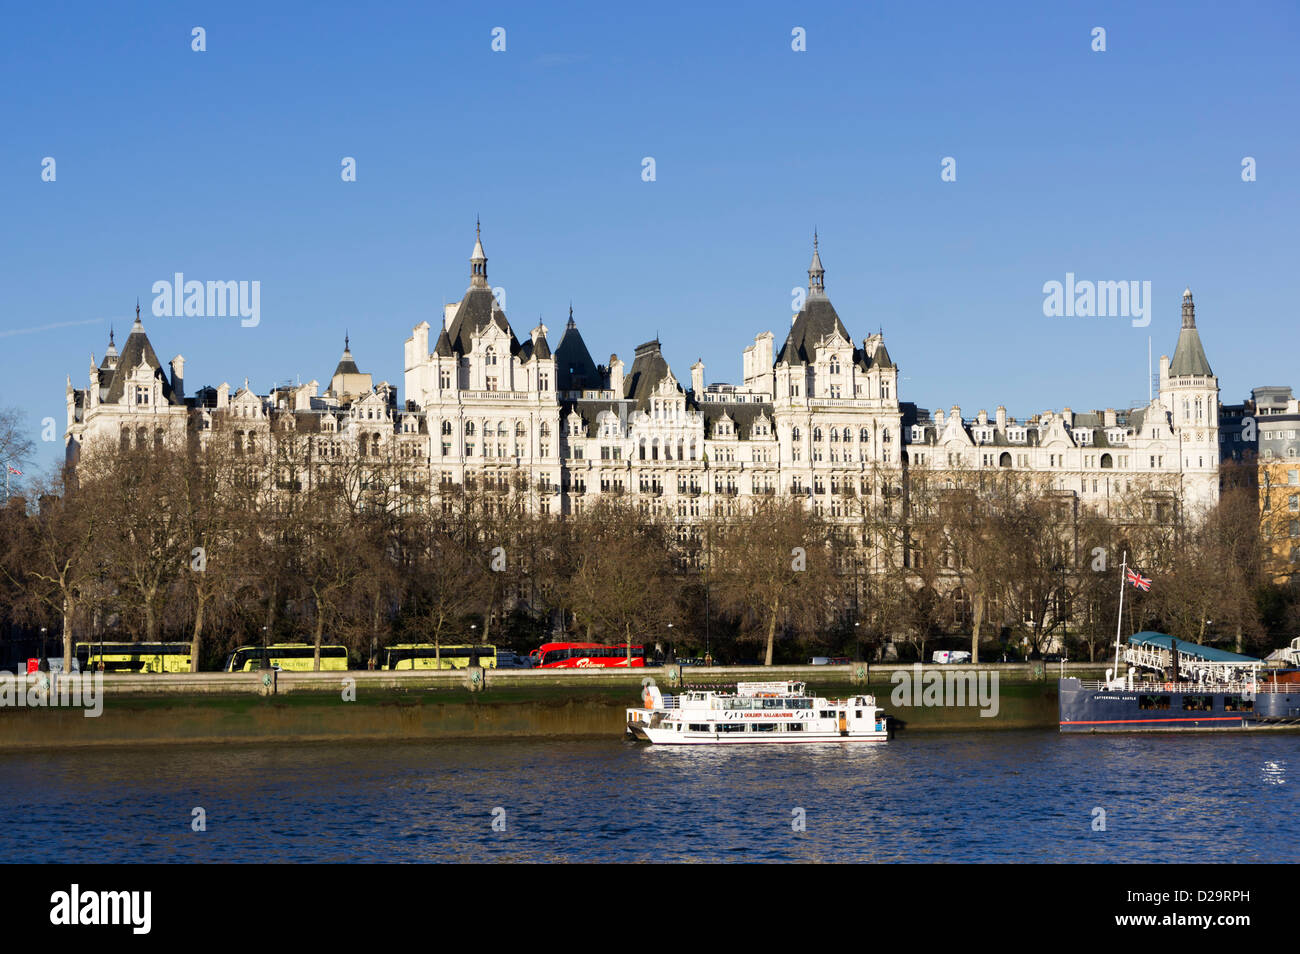 Whitehall Court building part of which is Royal Horseguards Hotel, Thames River, London, UK - Stock Image